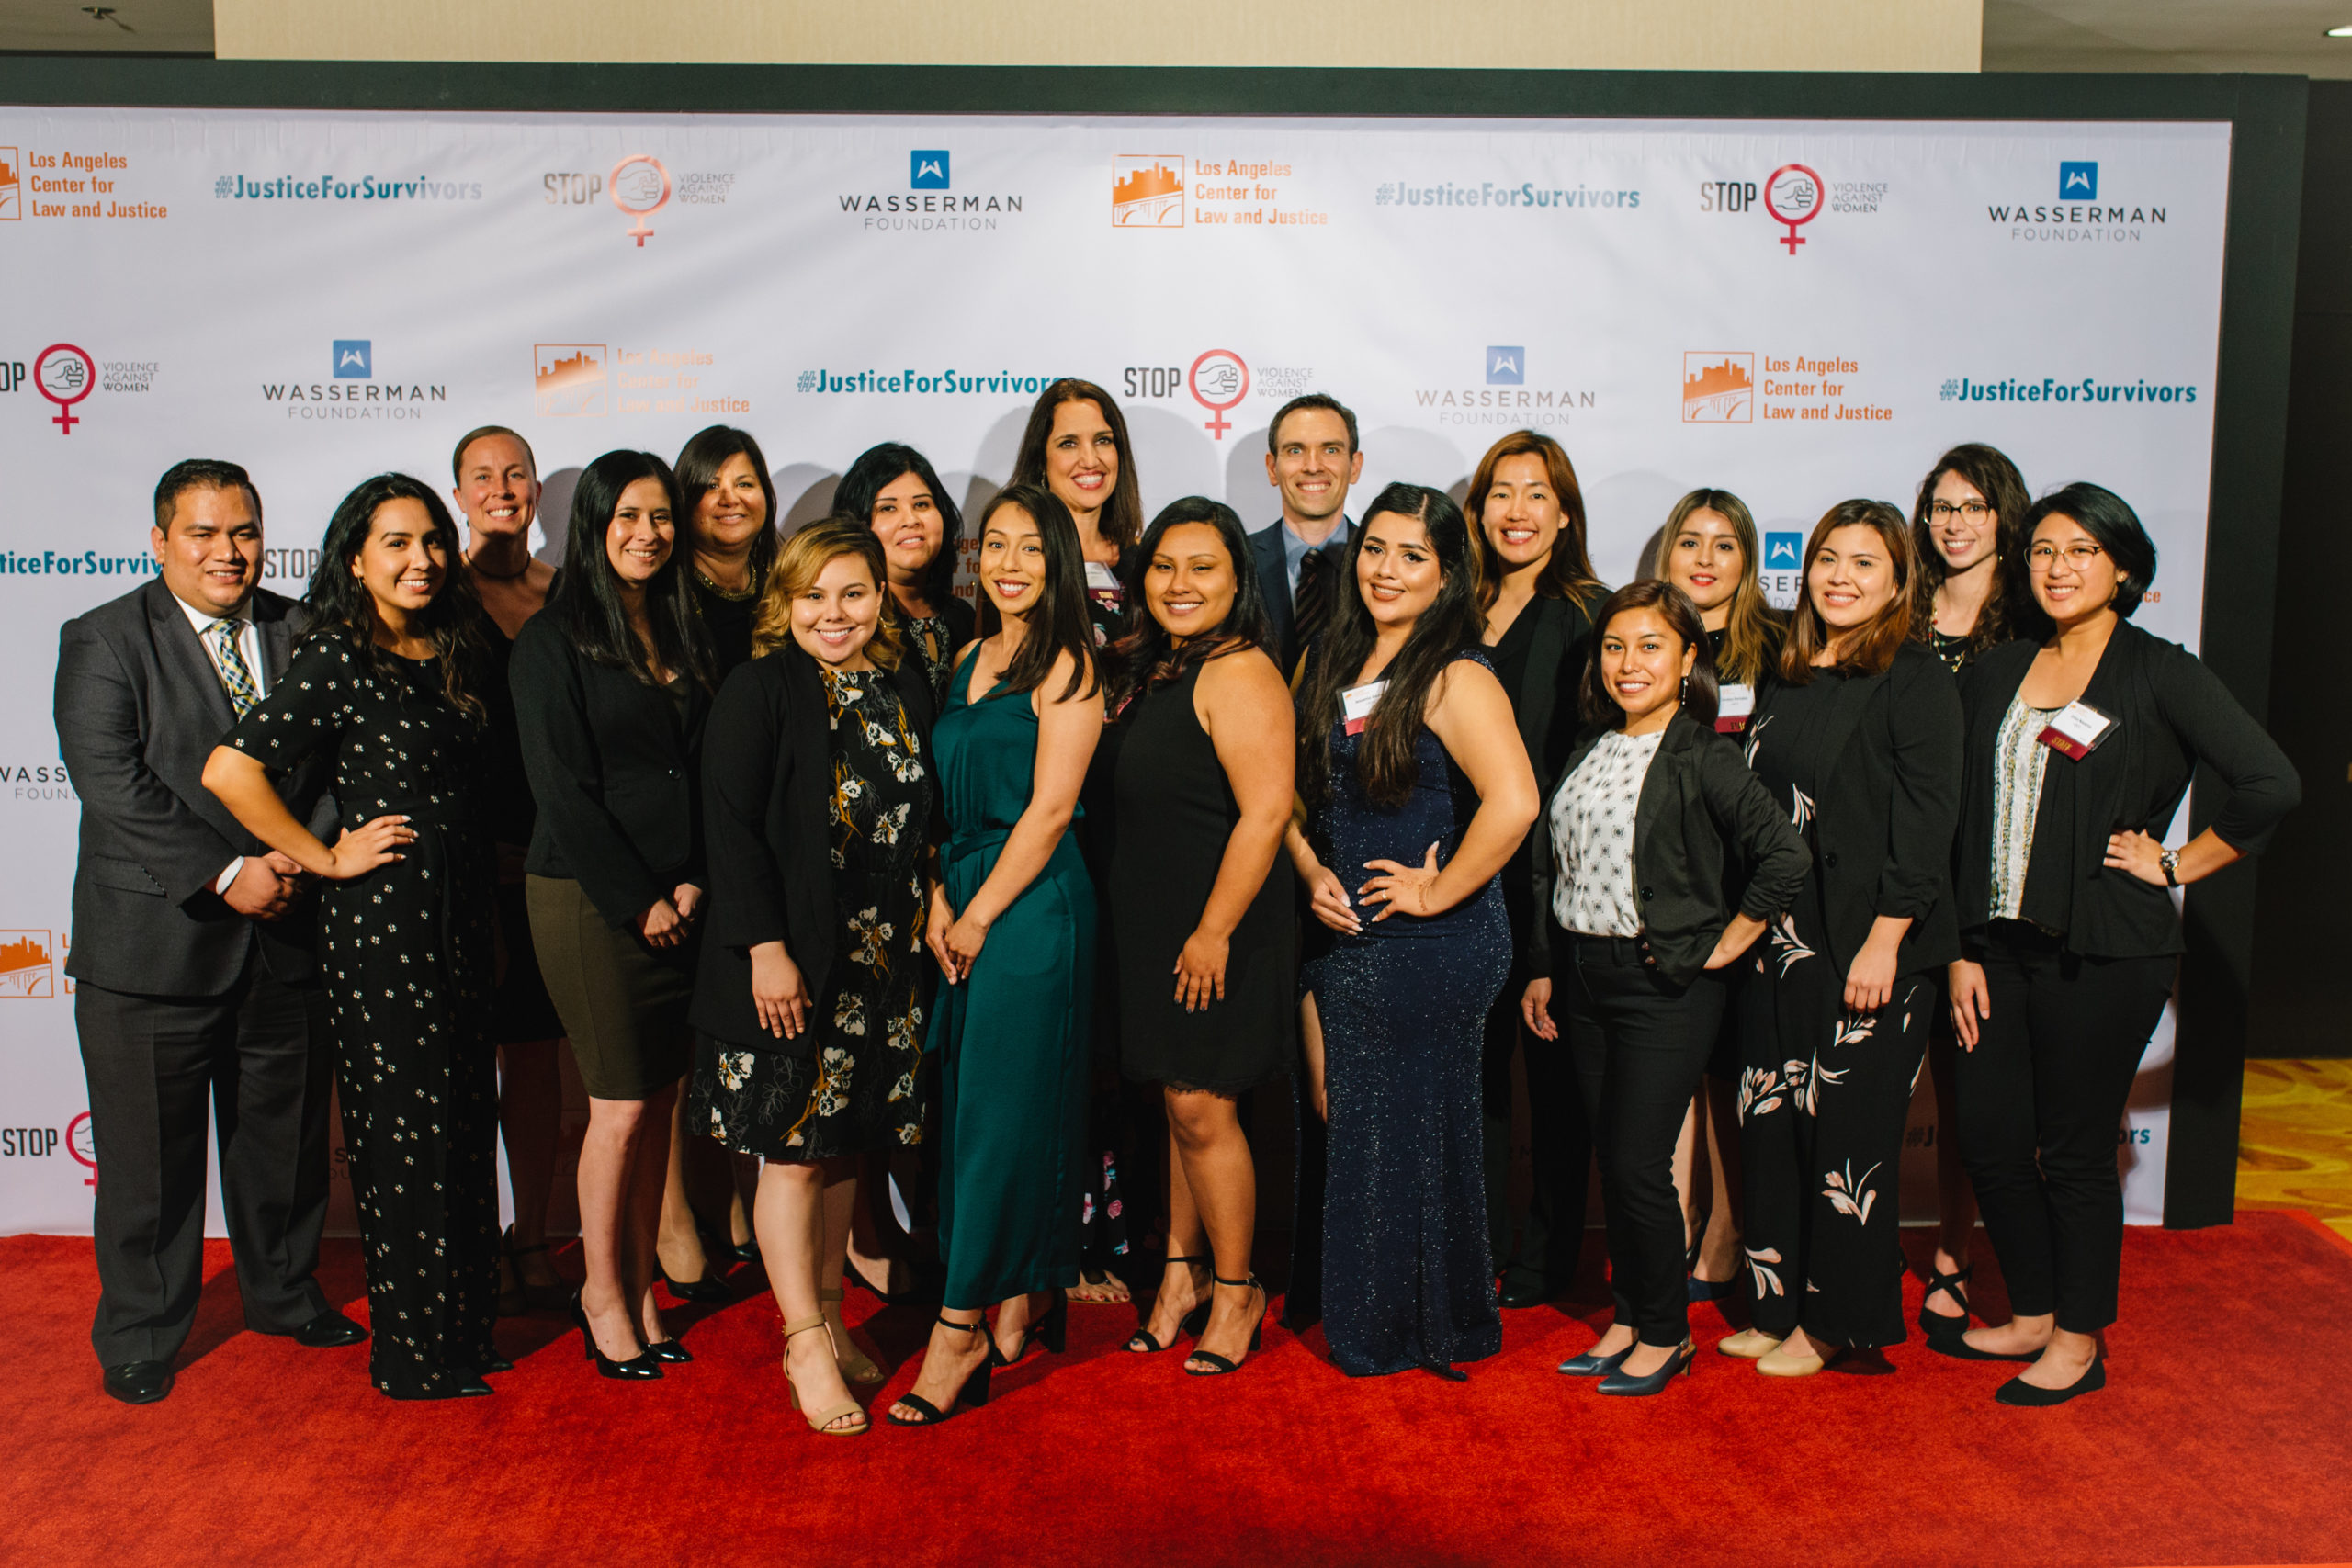 LACLJ Staff at 2019 Gala